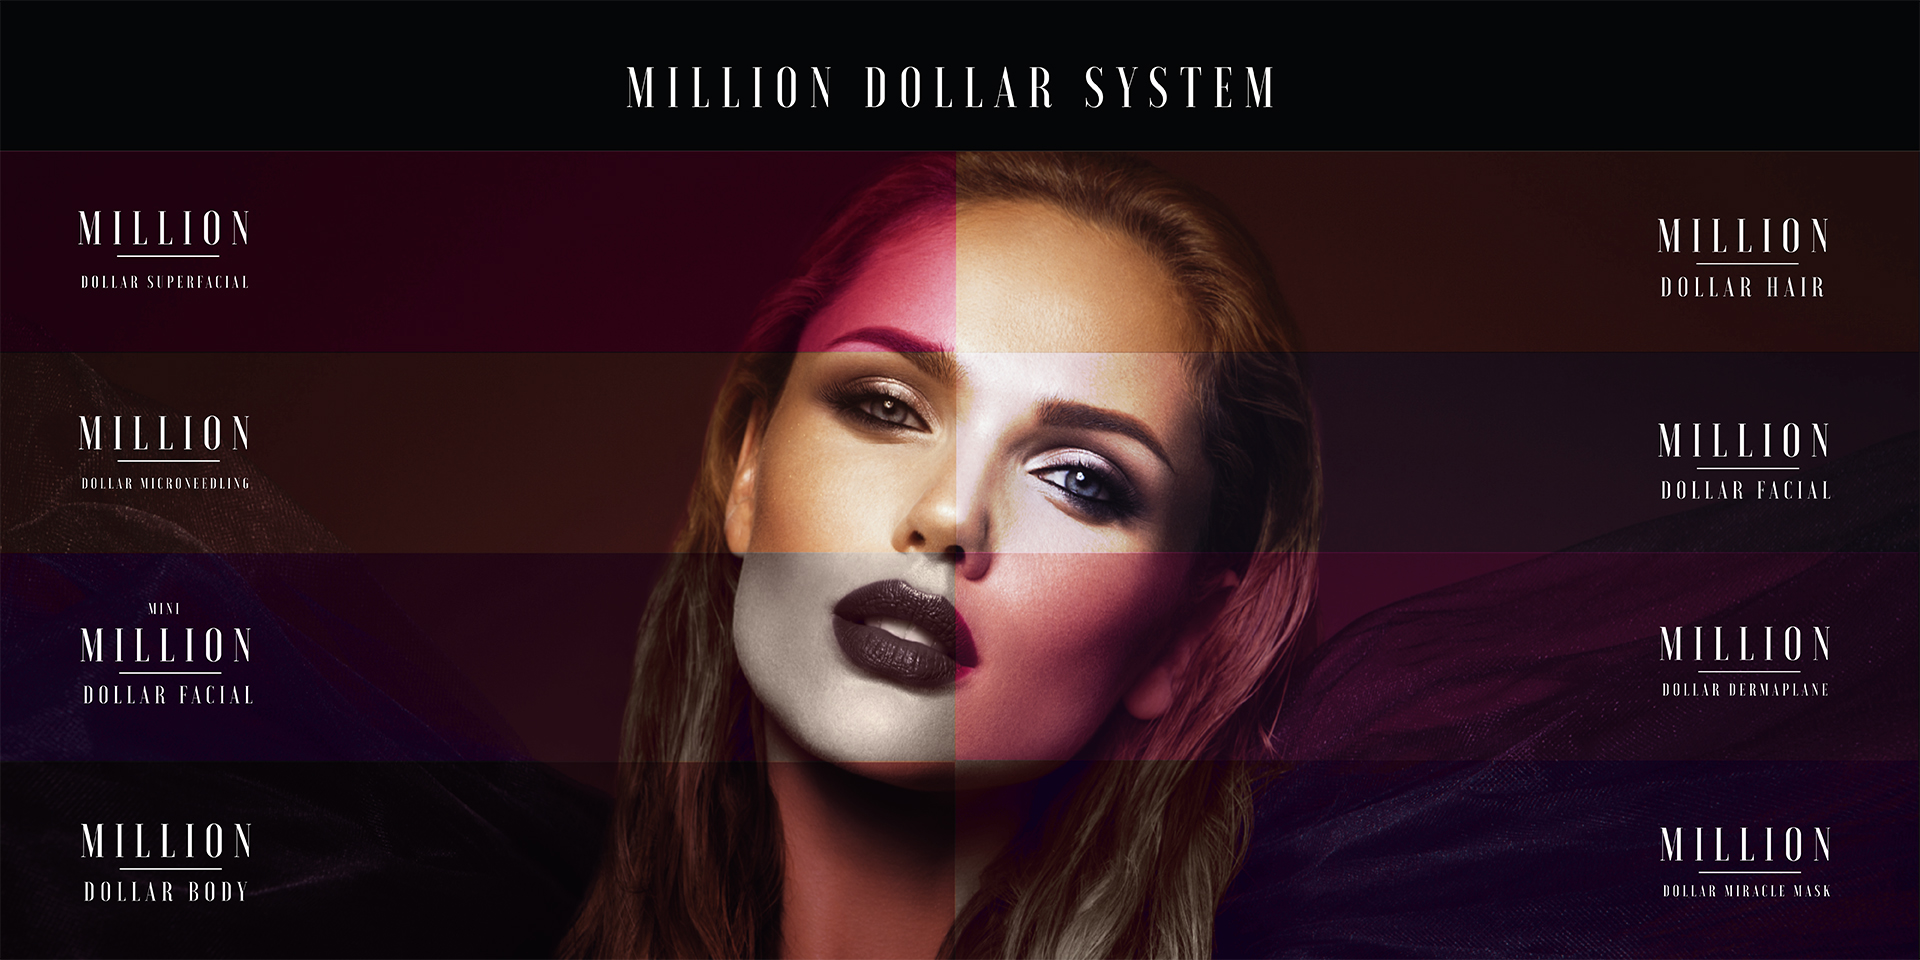 Million Dollar System Range